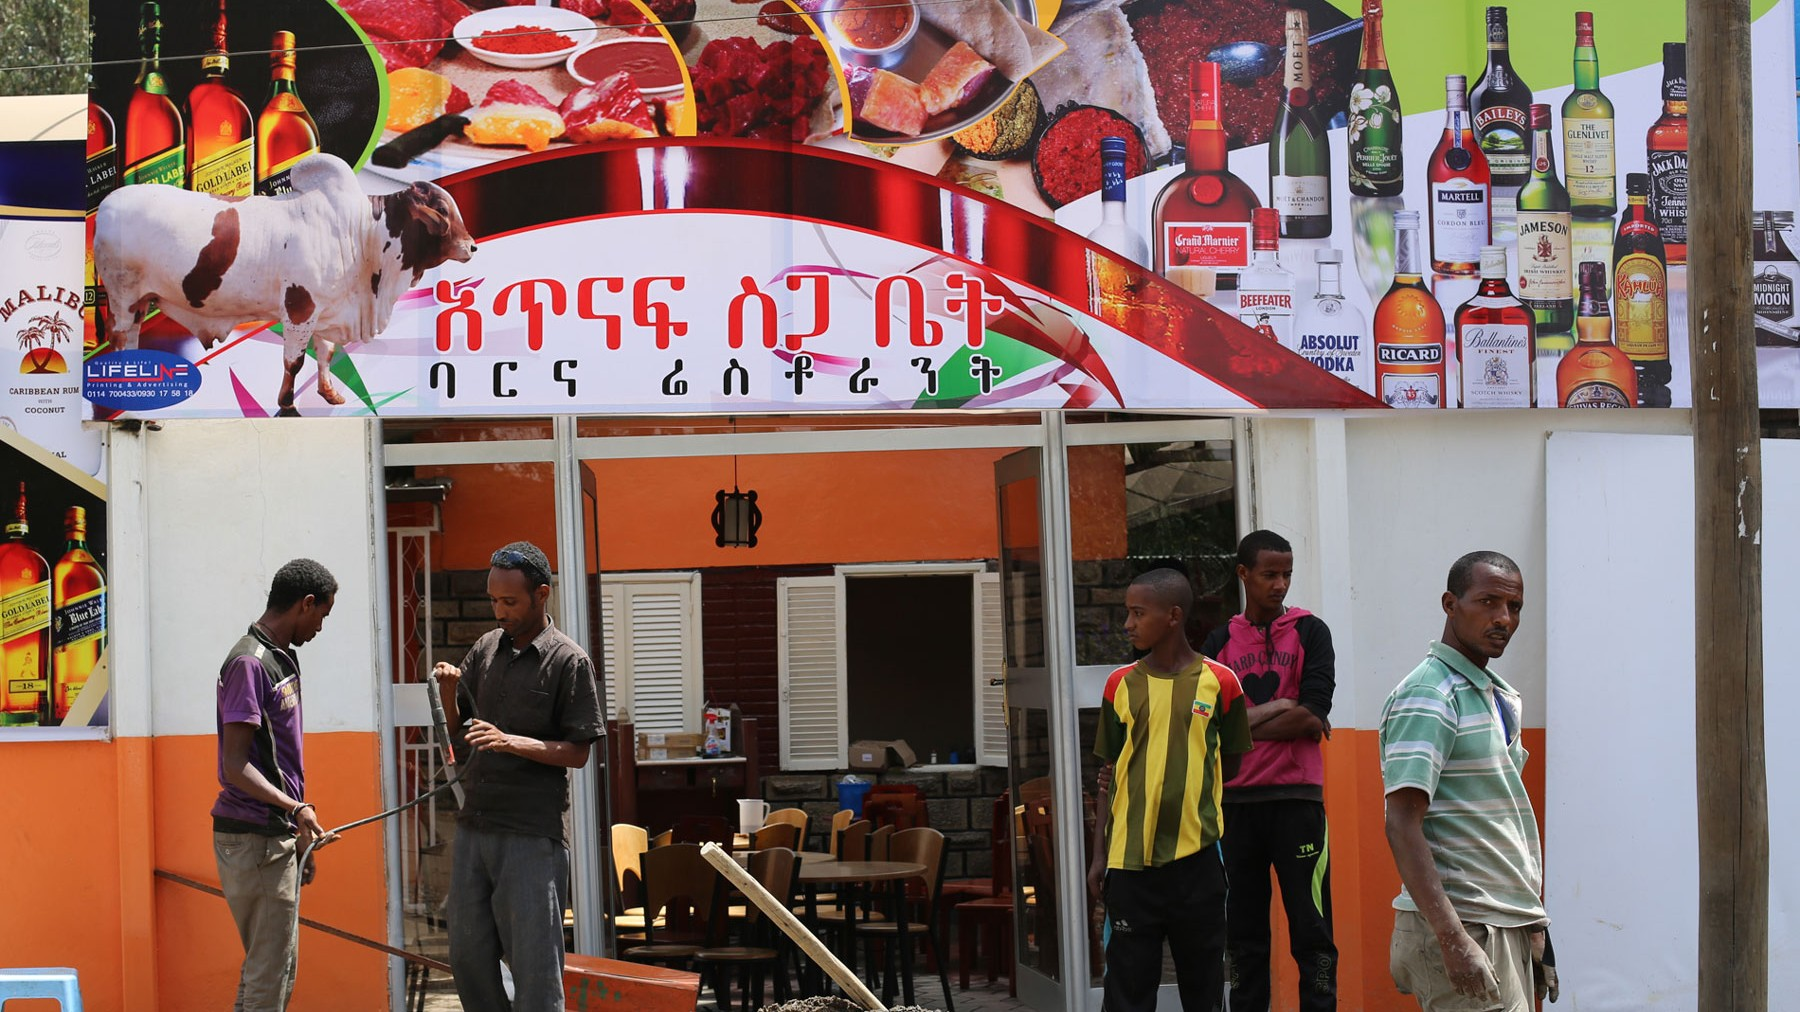 Atnaf-siga-bet-put-the-finishing-touches-on-their-new-sign.-Where-it-showed-fish-and-vegetables-yesterday-today-they-advertise-raw-meat-and-alcohol